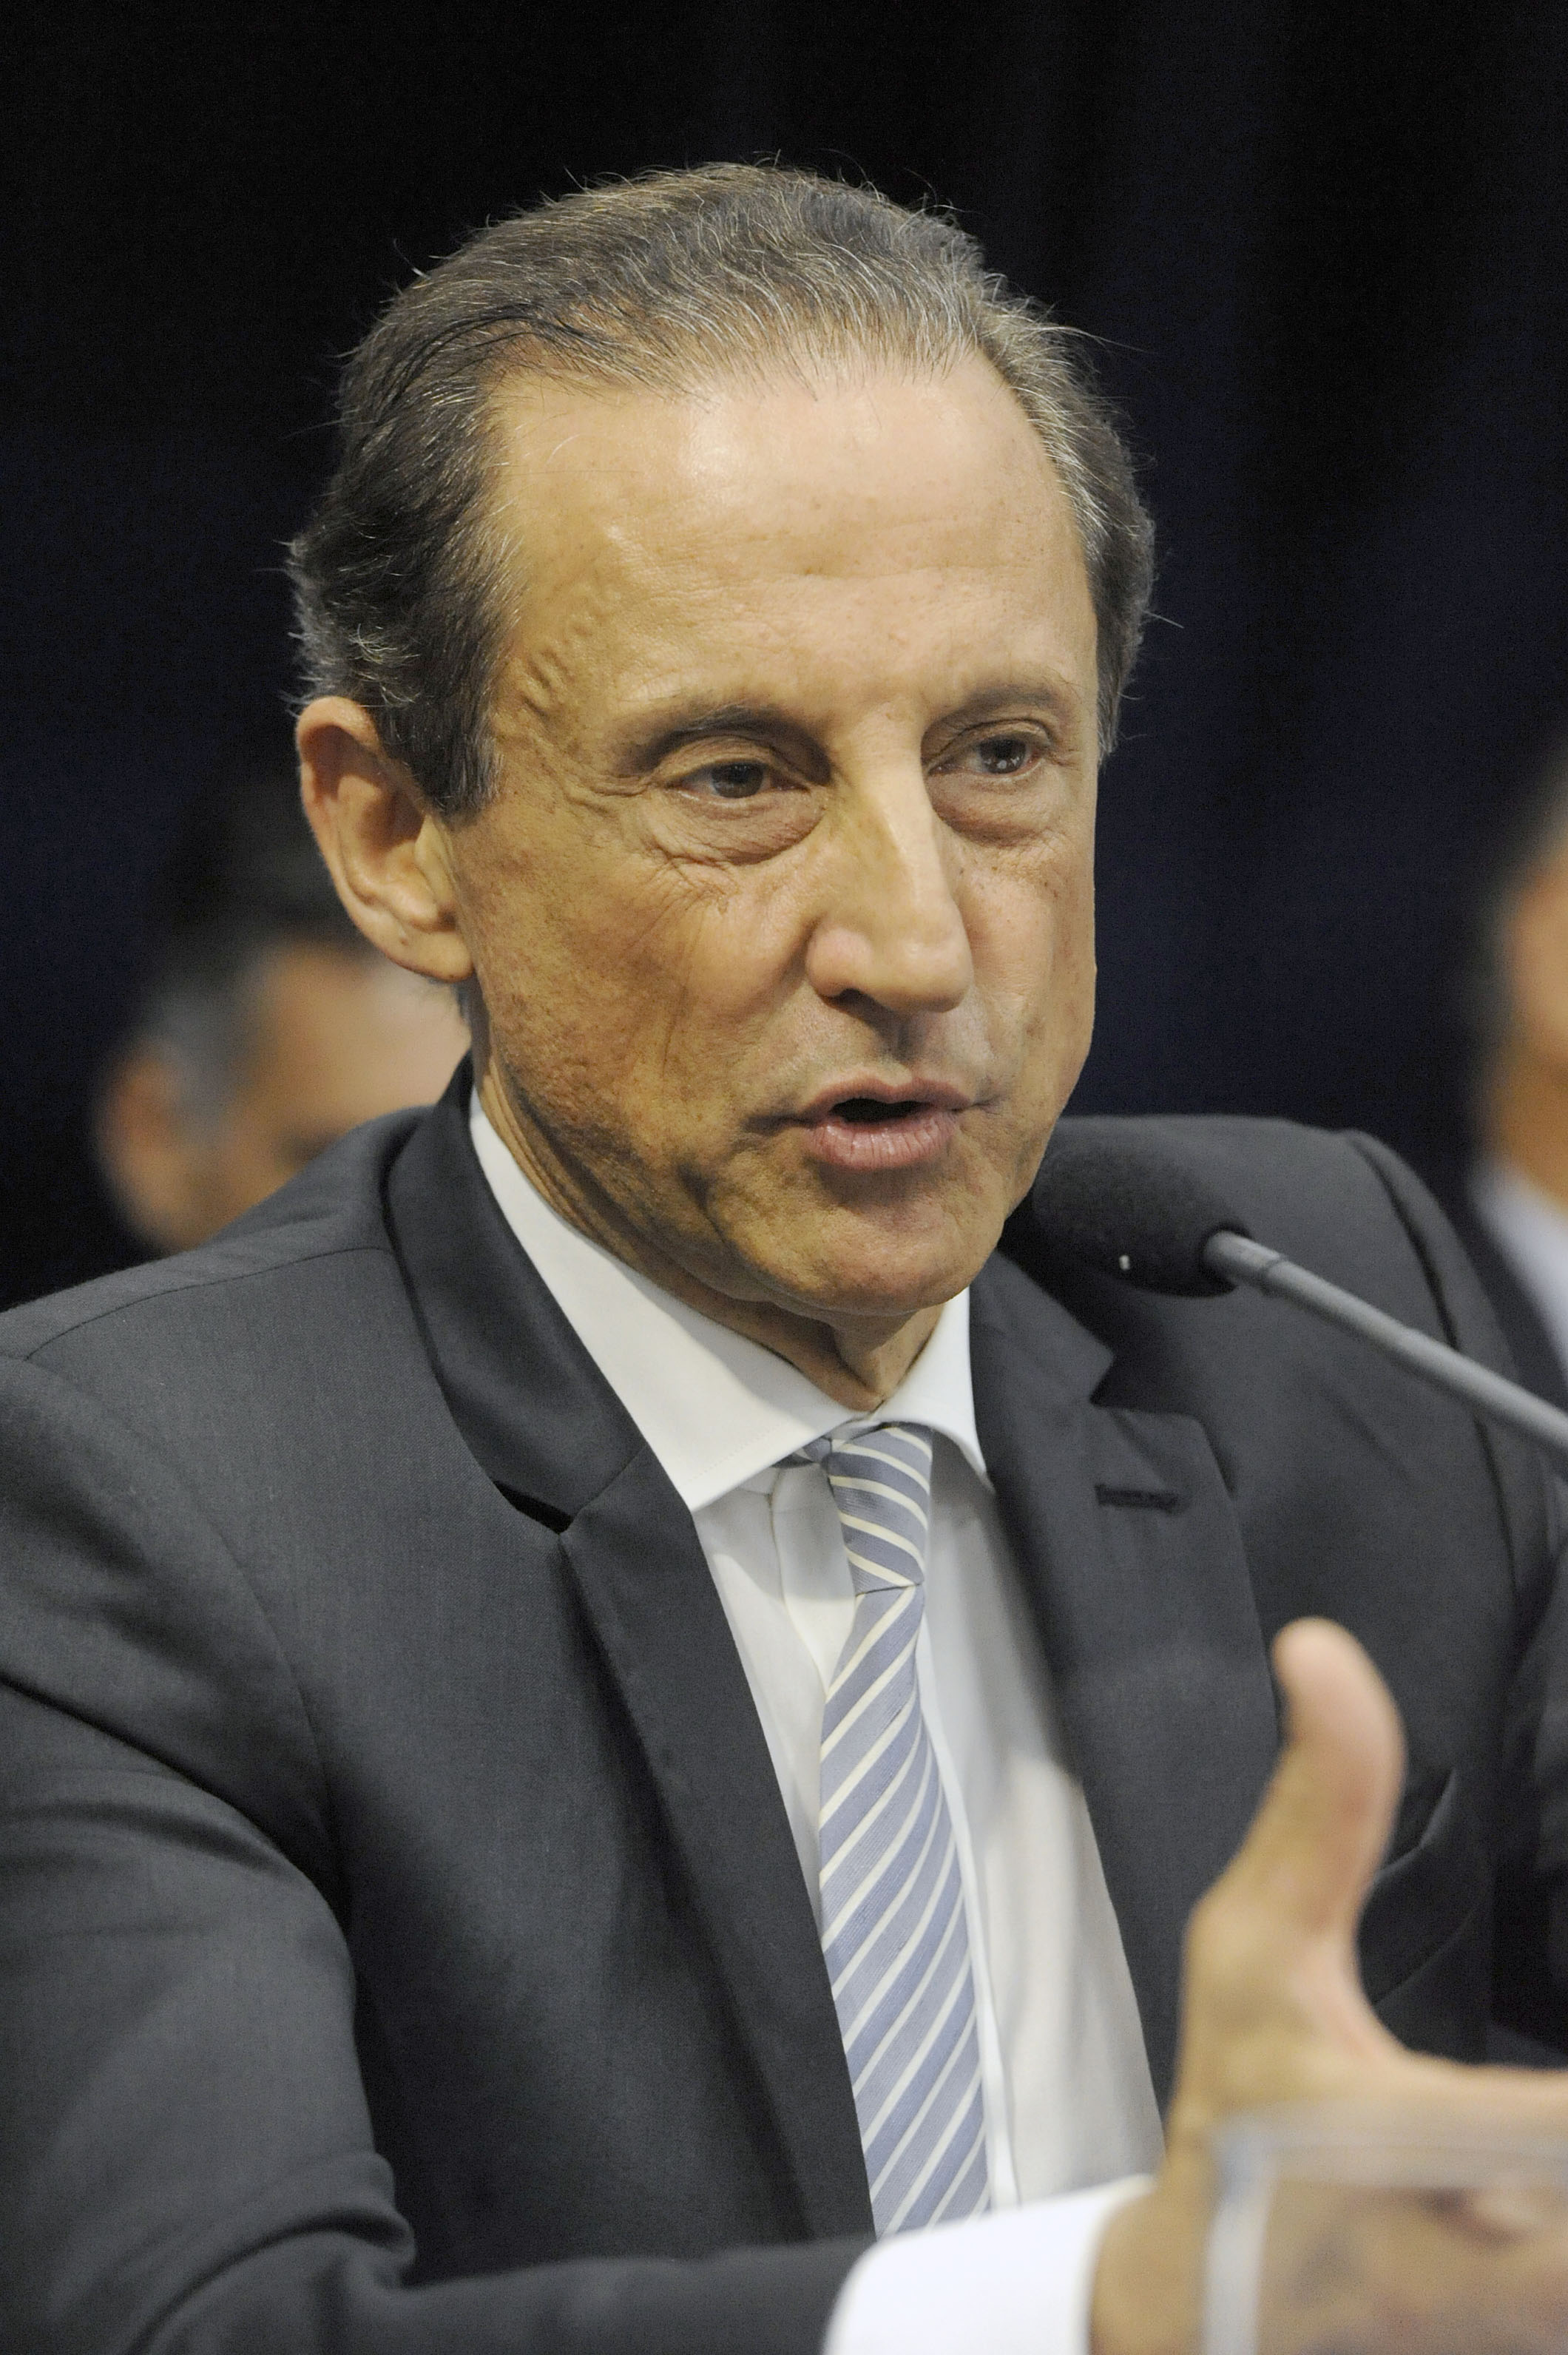 Paulo Skaf<a style='float:right' href='https://www3.al.sp.gov.br/repositorio/noticia/N-05-2015/fg170795.jpg' target=_blank><img src='/_img/material-file-download-white.png' width='14px' alt='Clique para baixar a imagem'></a>